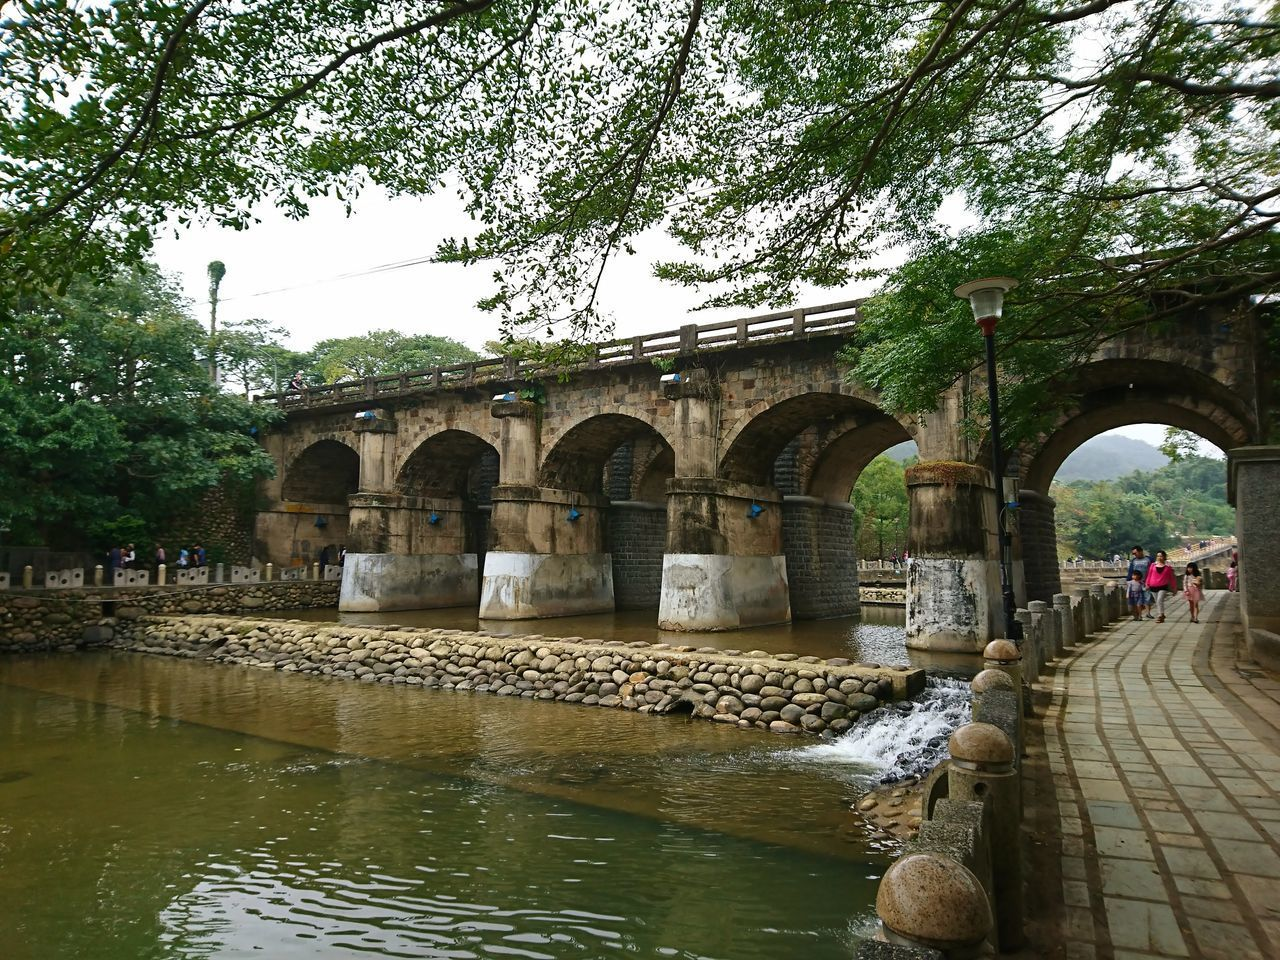 water, architecture, built structure, tree, arch, day, nature, plant, building exterior, connection, incidental people, waterfront, reflection, travel destinations, tourism, bridge, outdoors, history, architectural column, flowing water, arch bridge, flowing